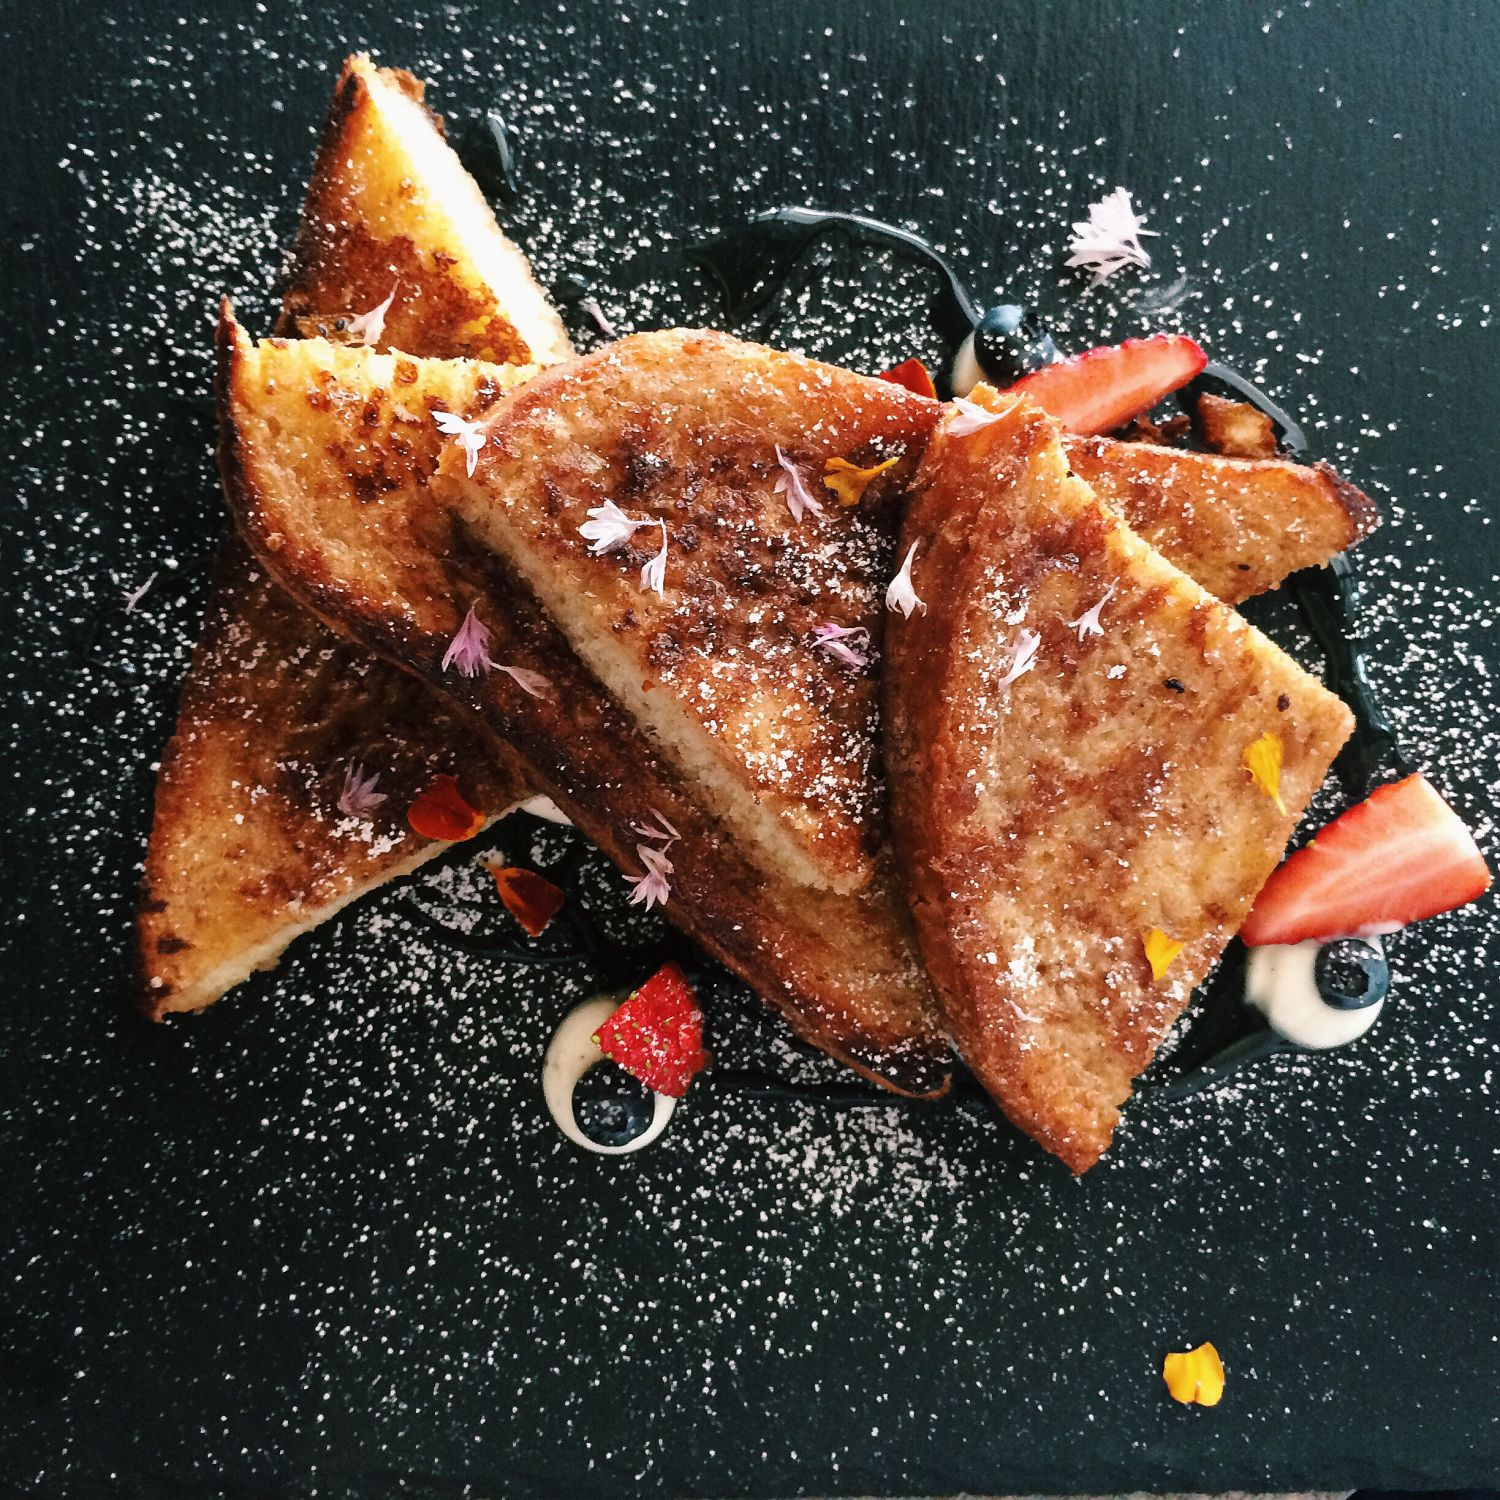 Truffle-Honey French Toast - Bridge